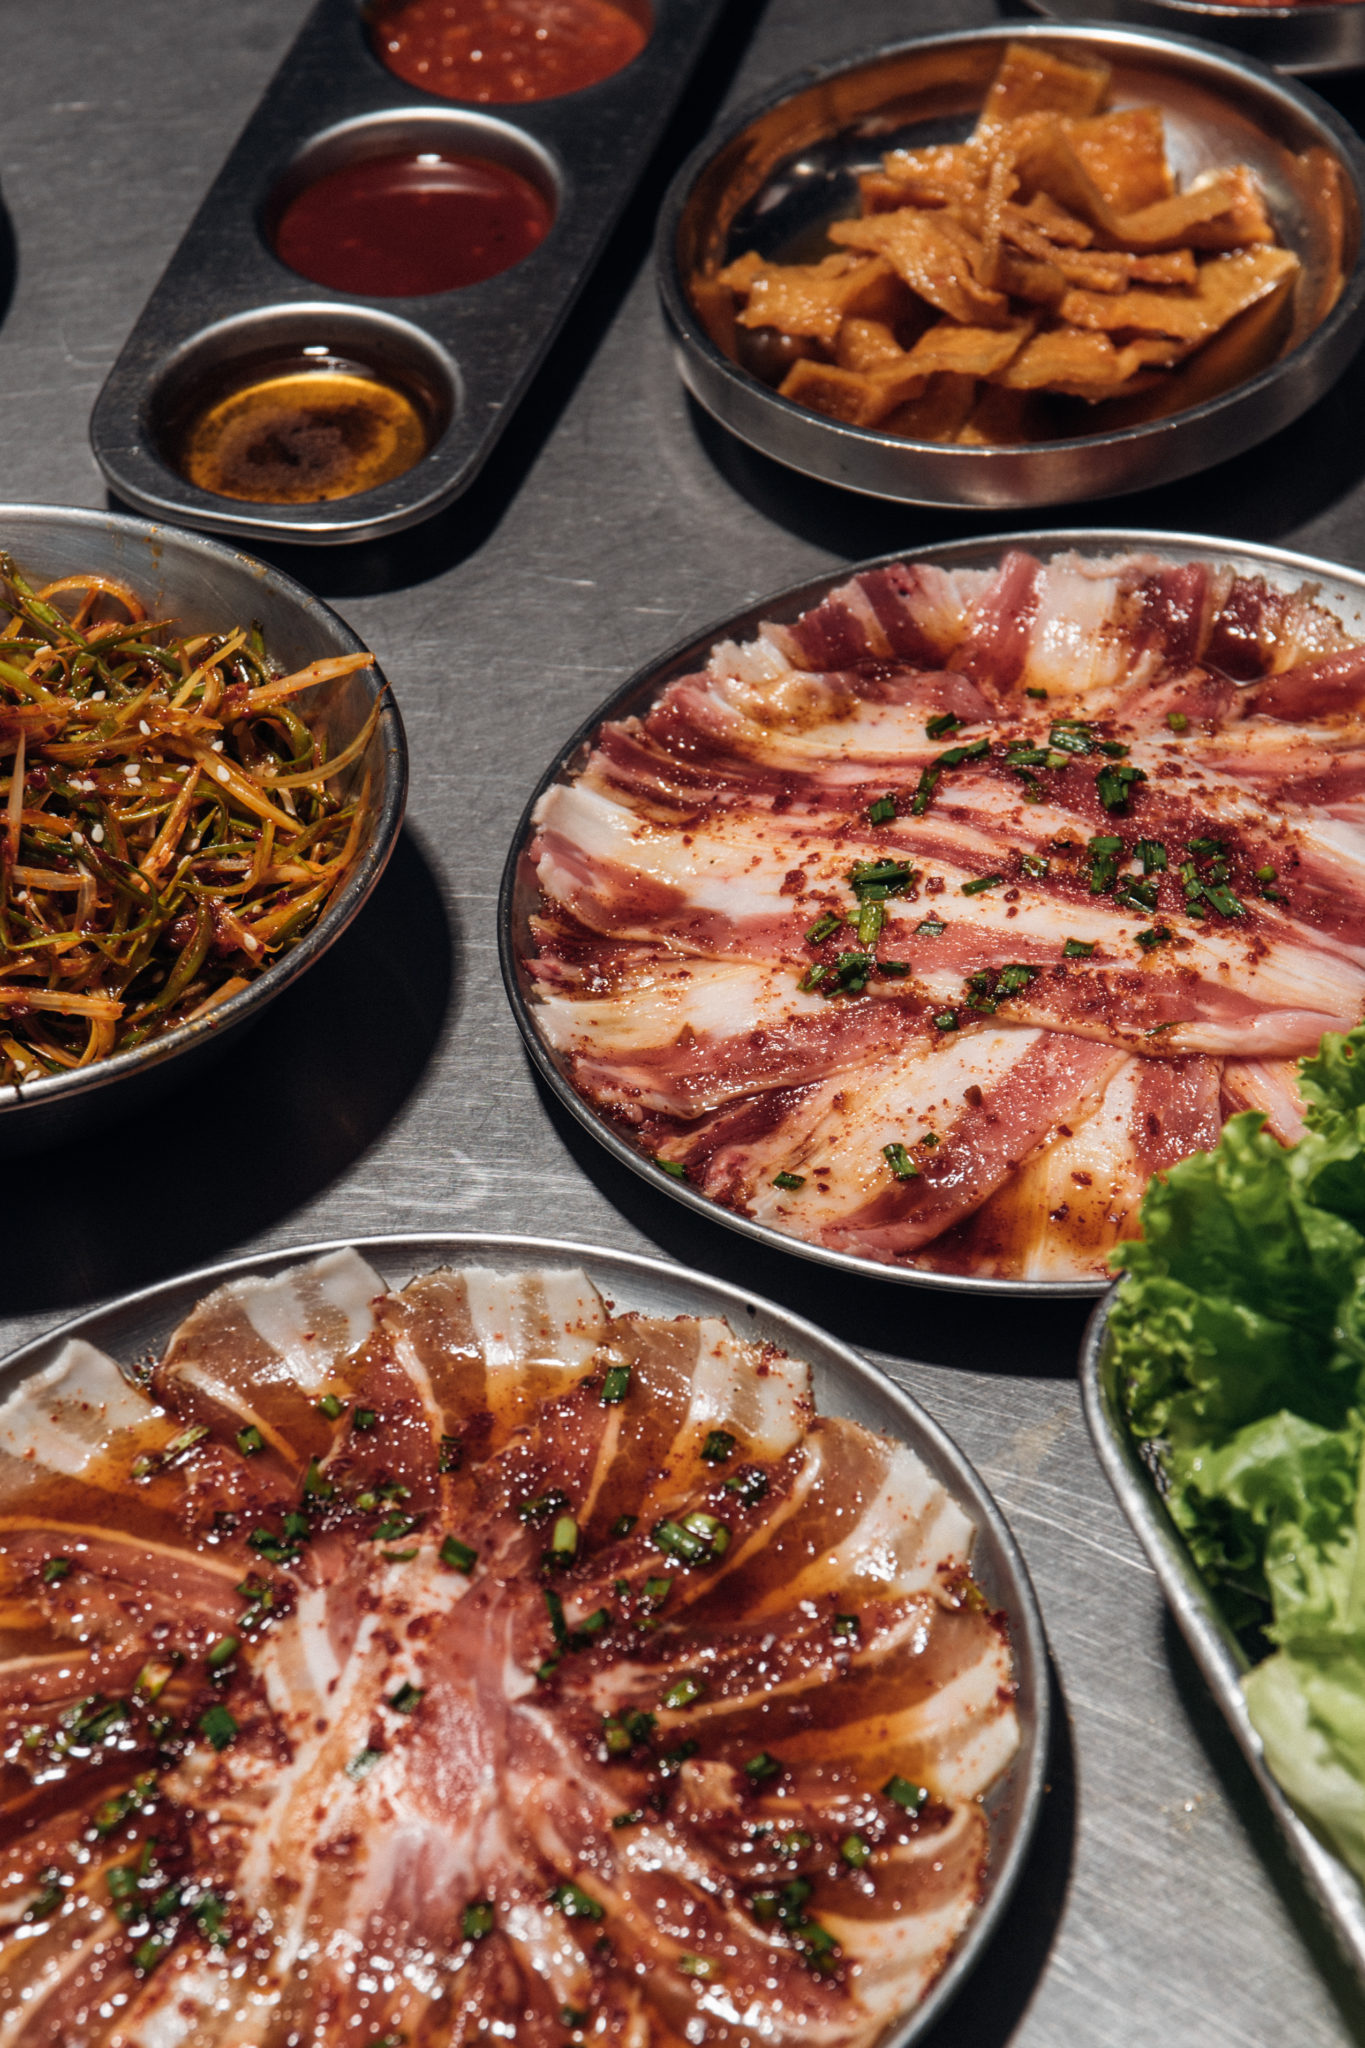 Filipinos' love for chicken and pork is another reason why Korean barbecue is very popular